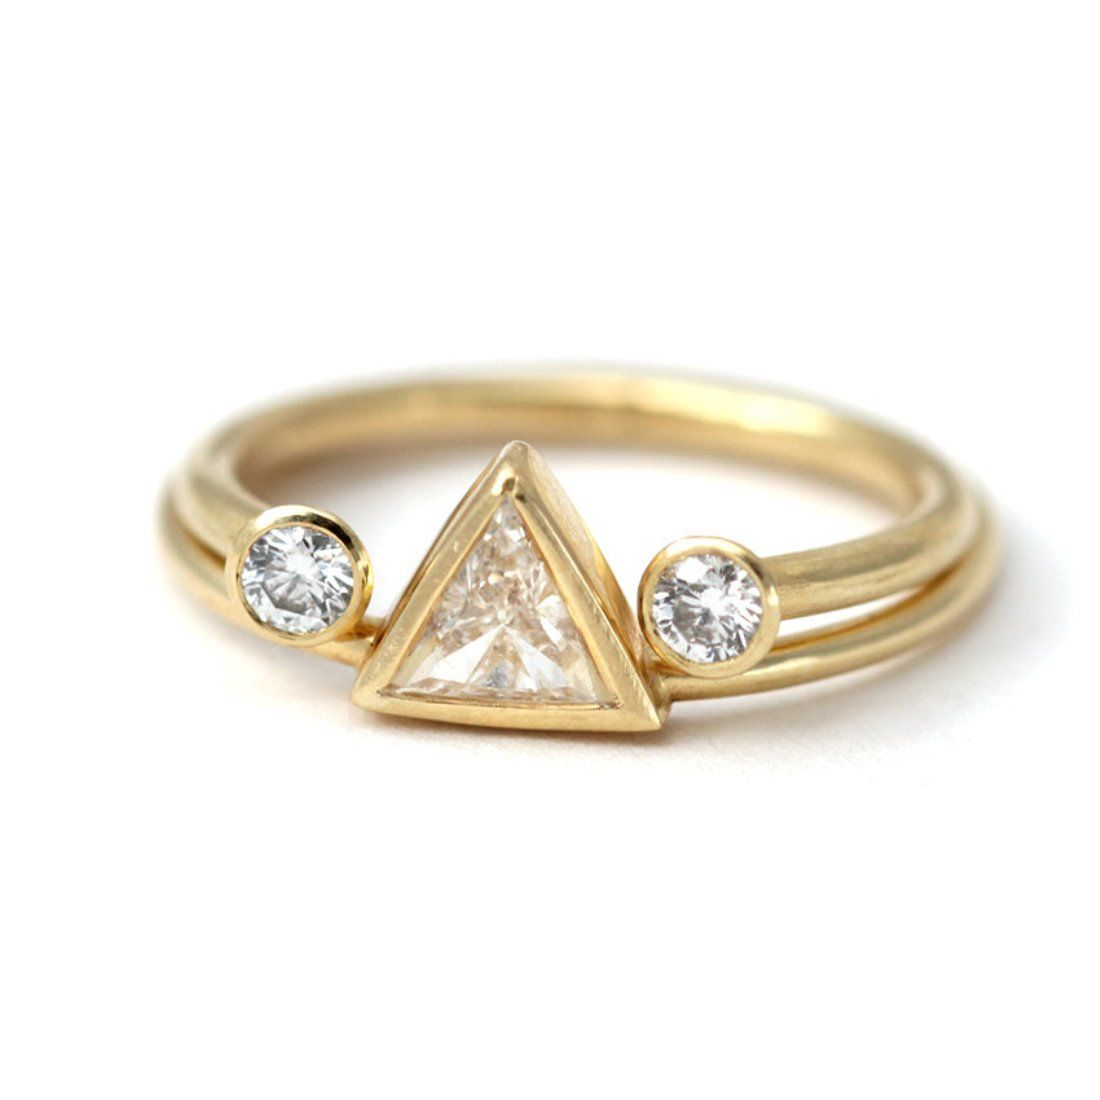 style jewelry punk most item engagement rings ring unique white from rose geometric expensive trendy inlaid gold in cubic zirconia color